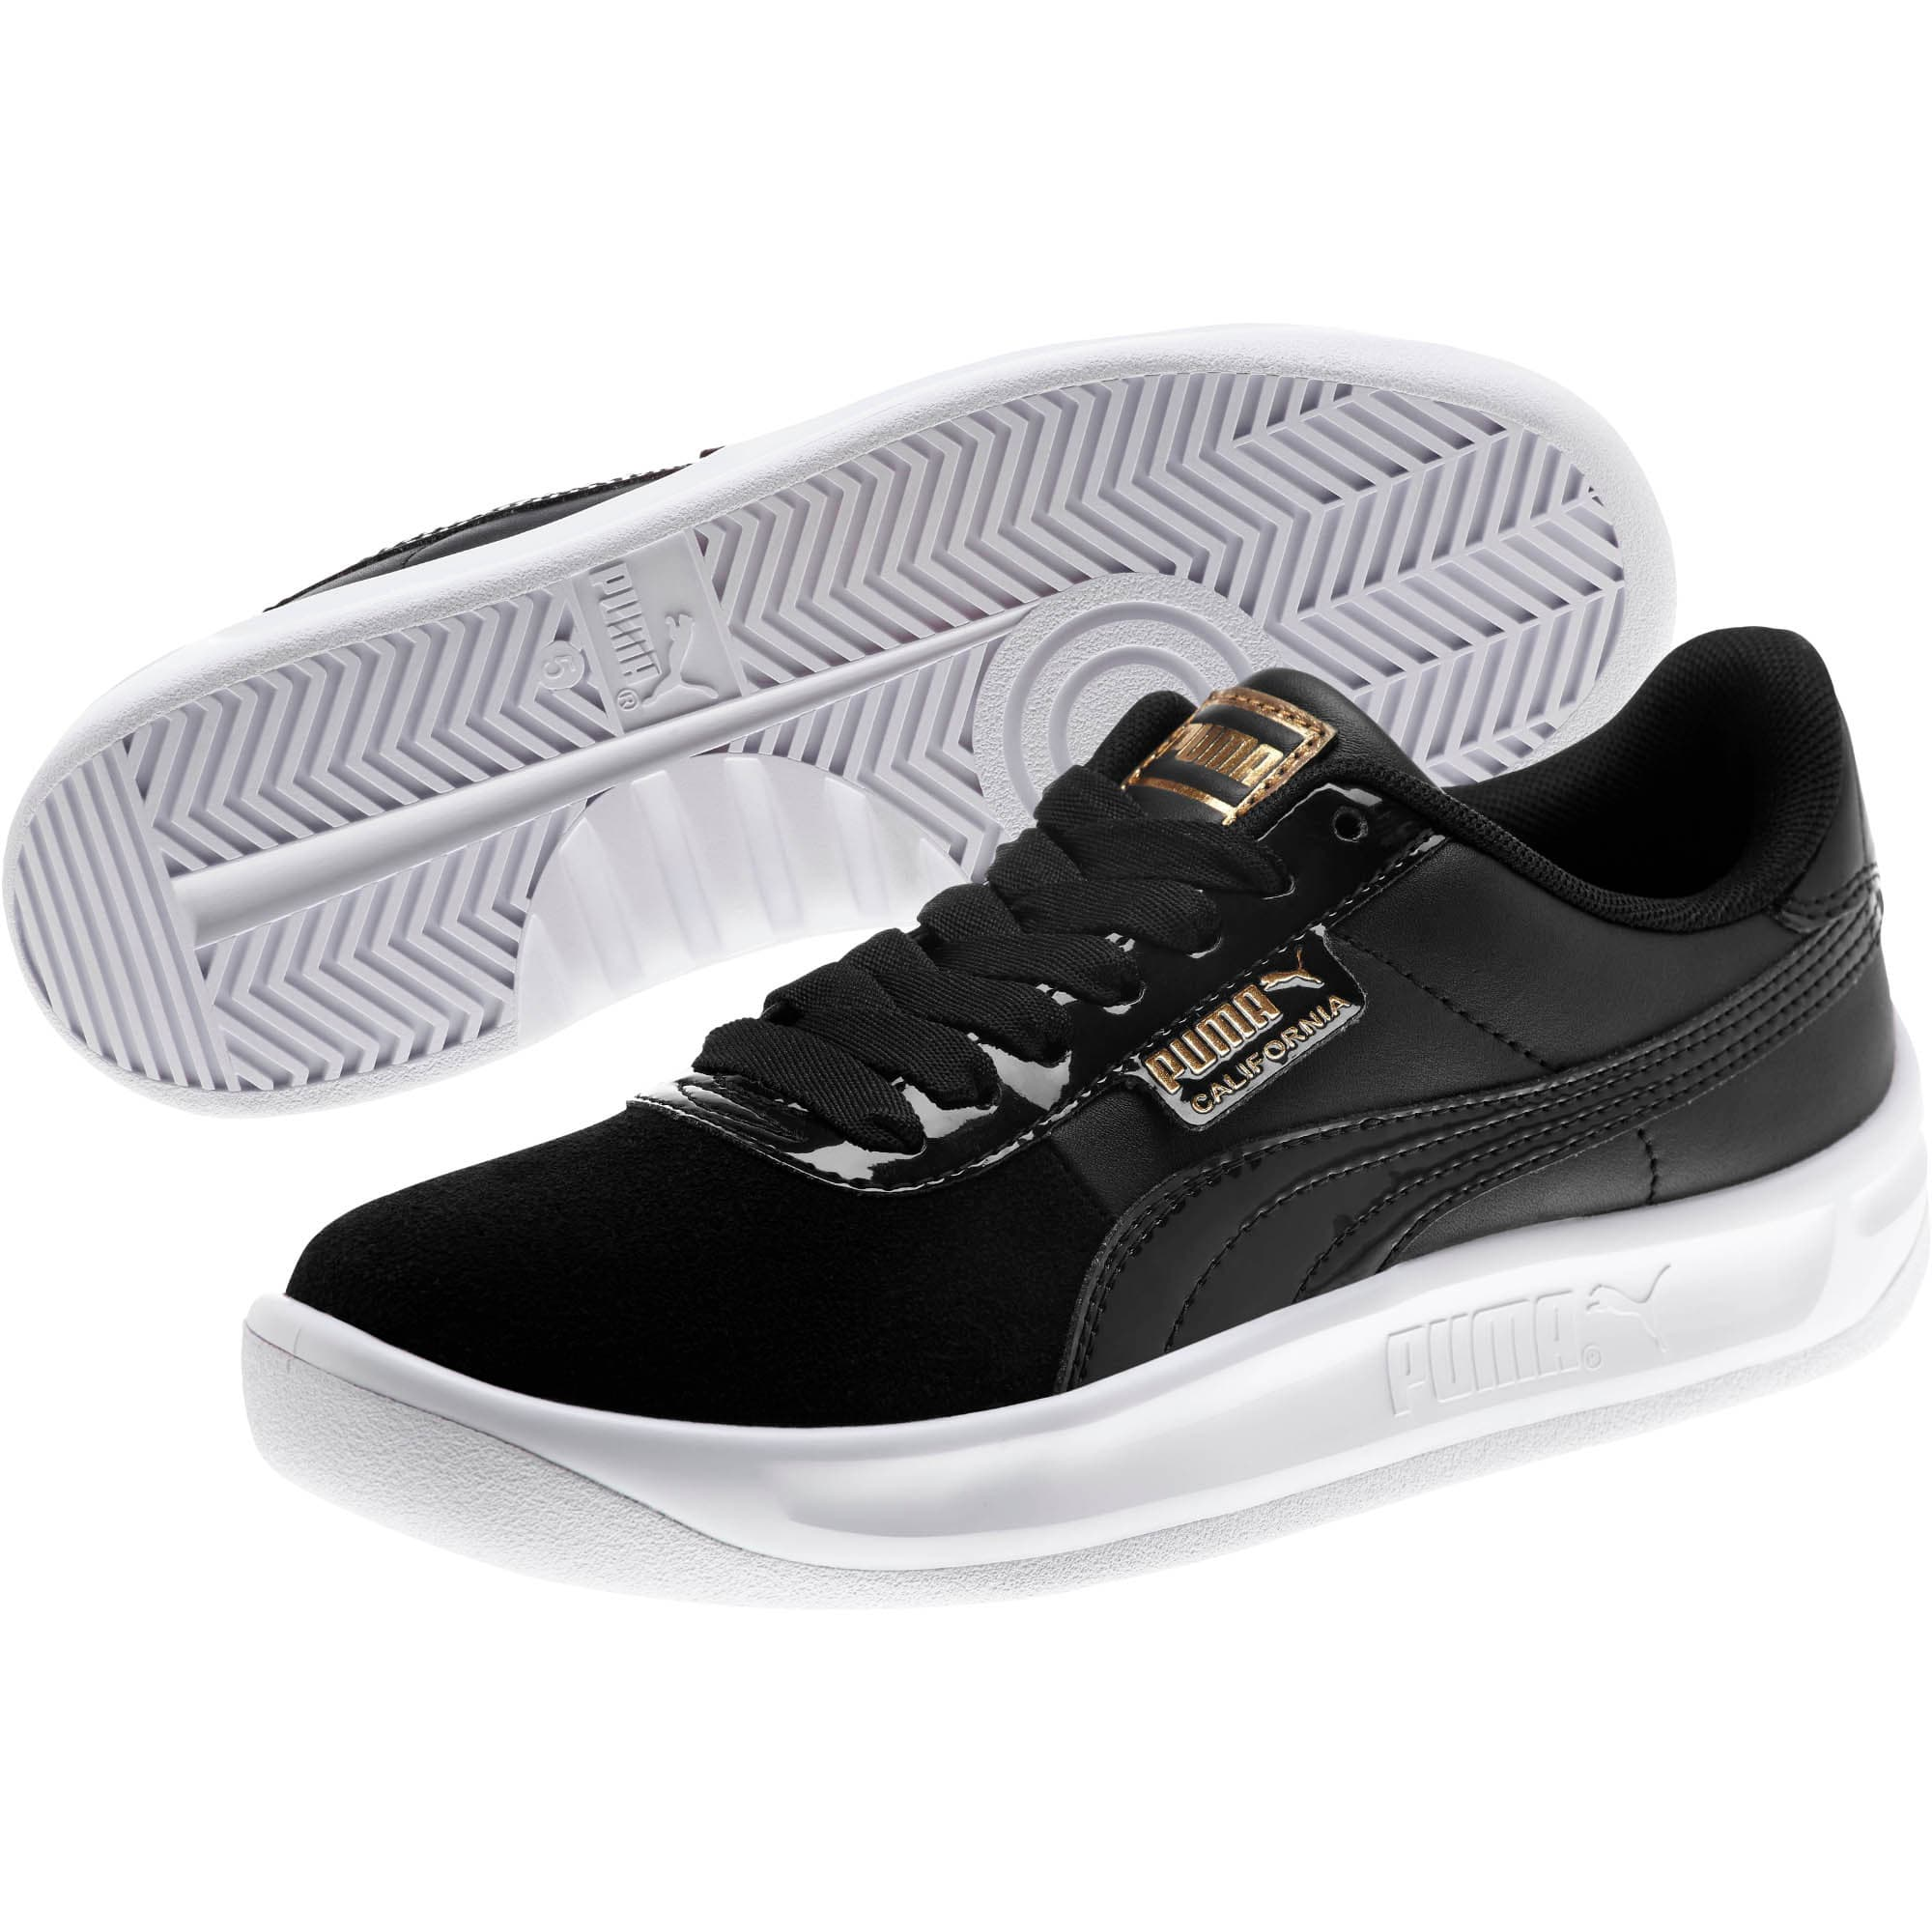 Thumbnail 2 of California Monochrome Women's Sneakers, Puma Black-Puma Team Gold, medium